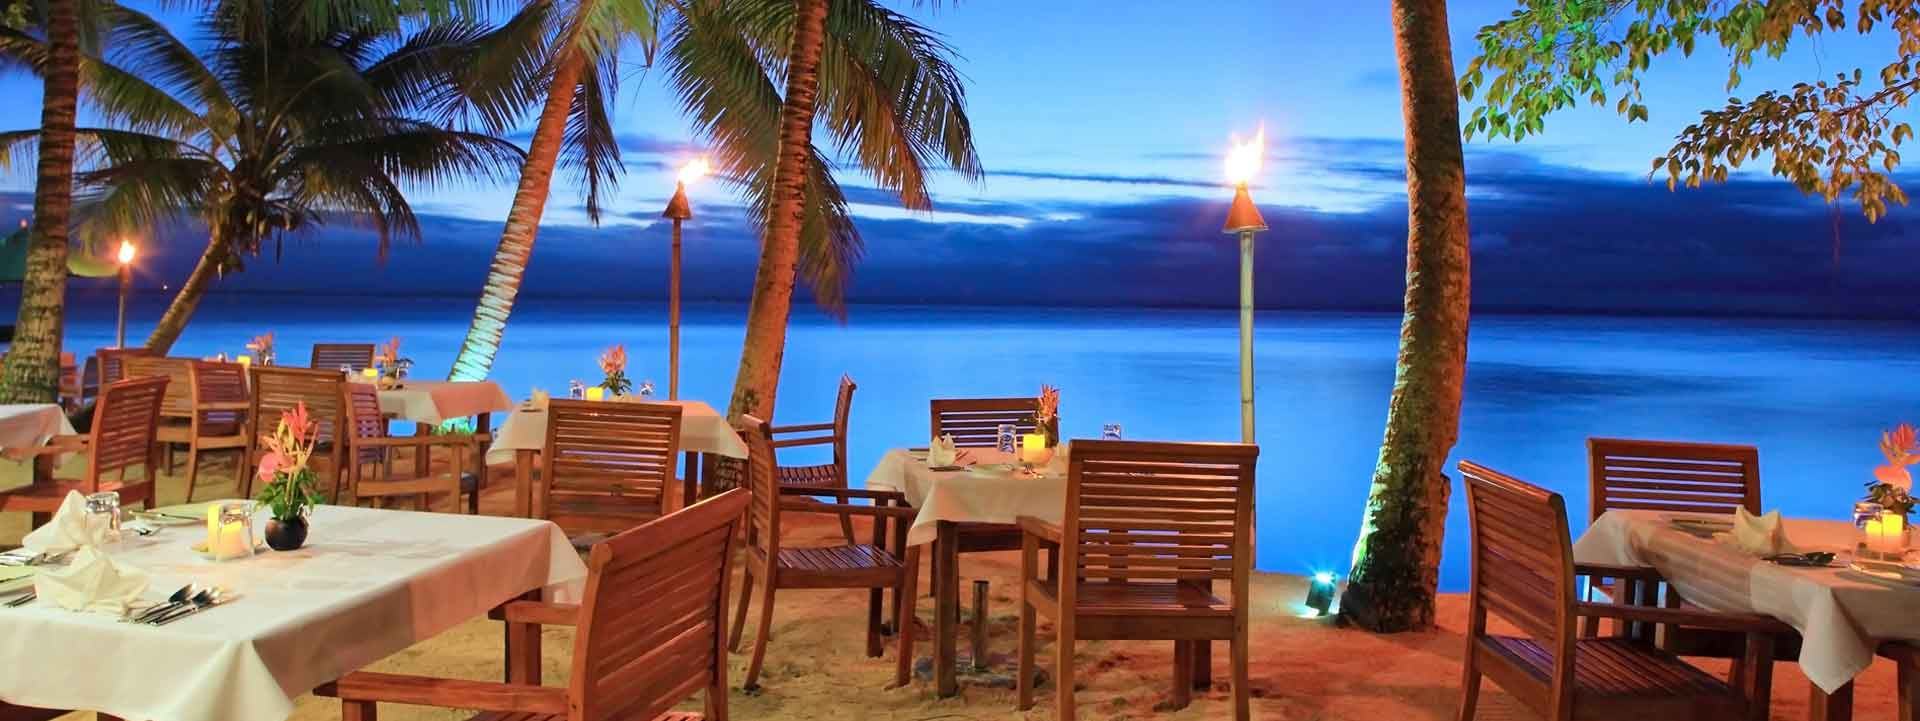 HEADER accommodation in the Lomaivit Islands for foodies Credit Toberua Island Resort